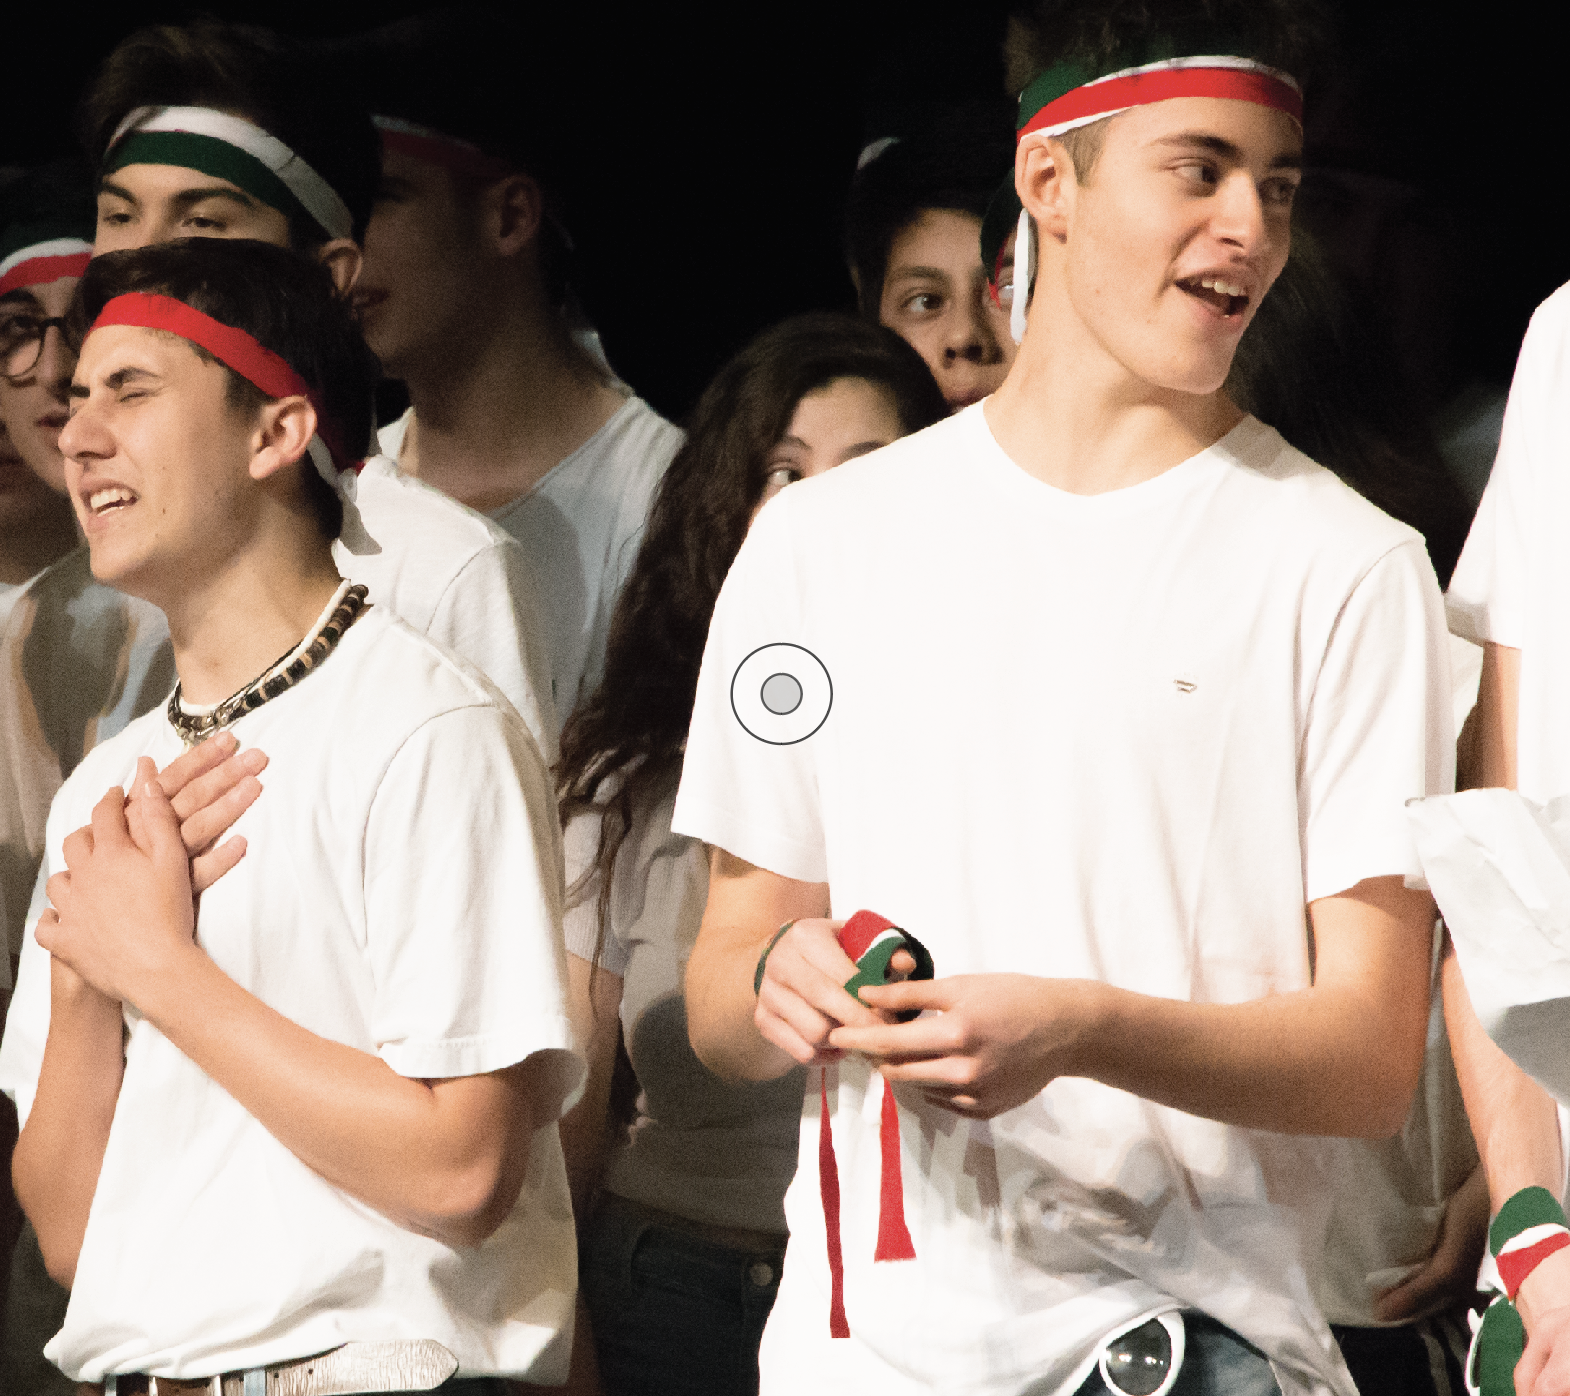 """Senior Justin Cilia (Left) and Italian exchange student Andrea Giorgio (Right) sing the Italian political song """"O Bella Ciao"""" during the International Assembly on March 20.The lyrics of the anthem honor partisans who rebelled against Nazi rule during World War II. Since then, politics have saturated Italian culture, yet a new wave of apathy has emerged in response to elections in recent years."""